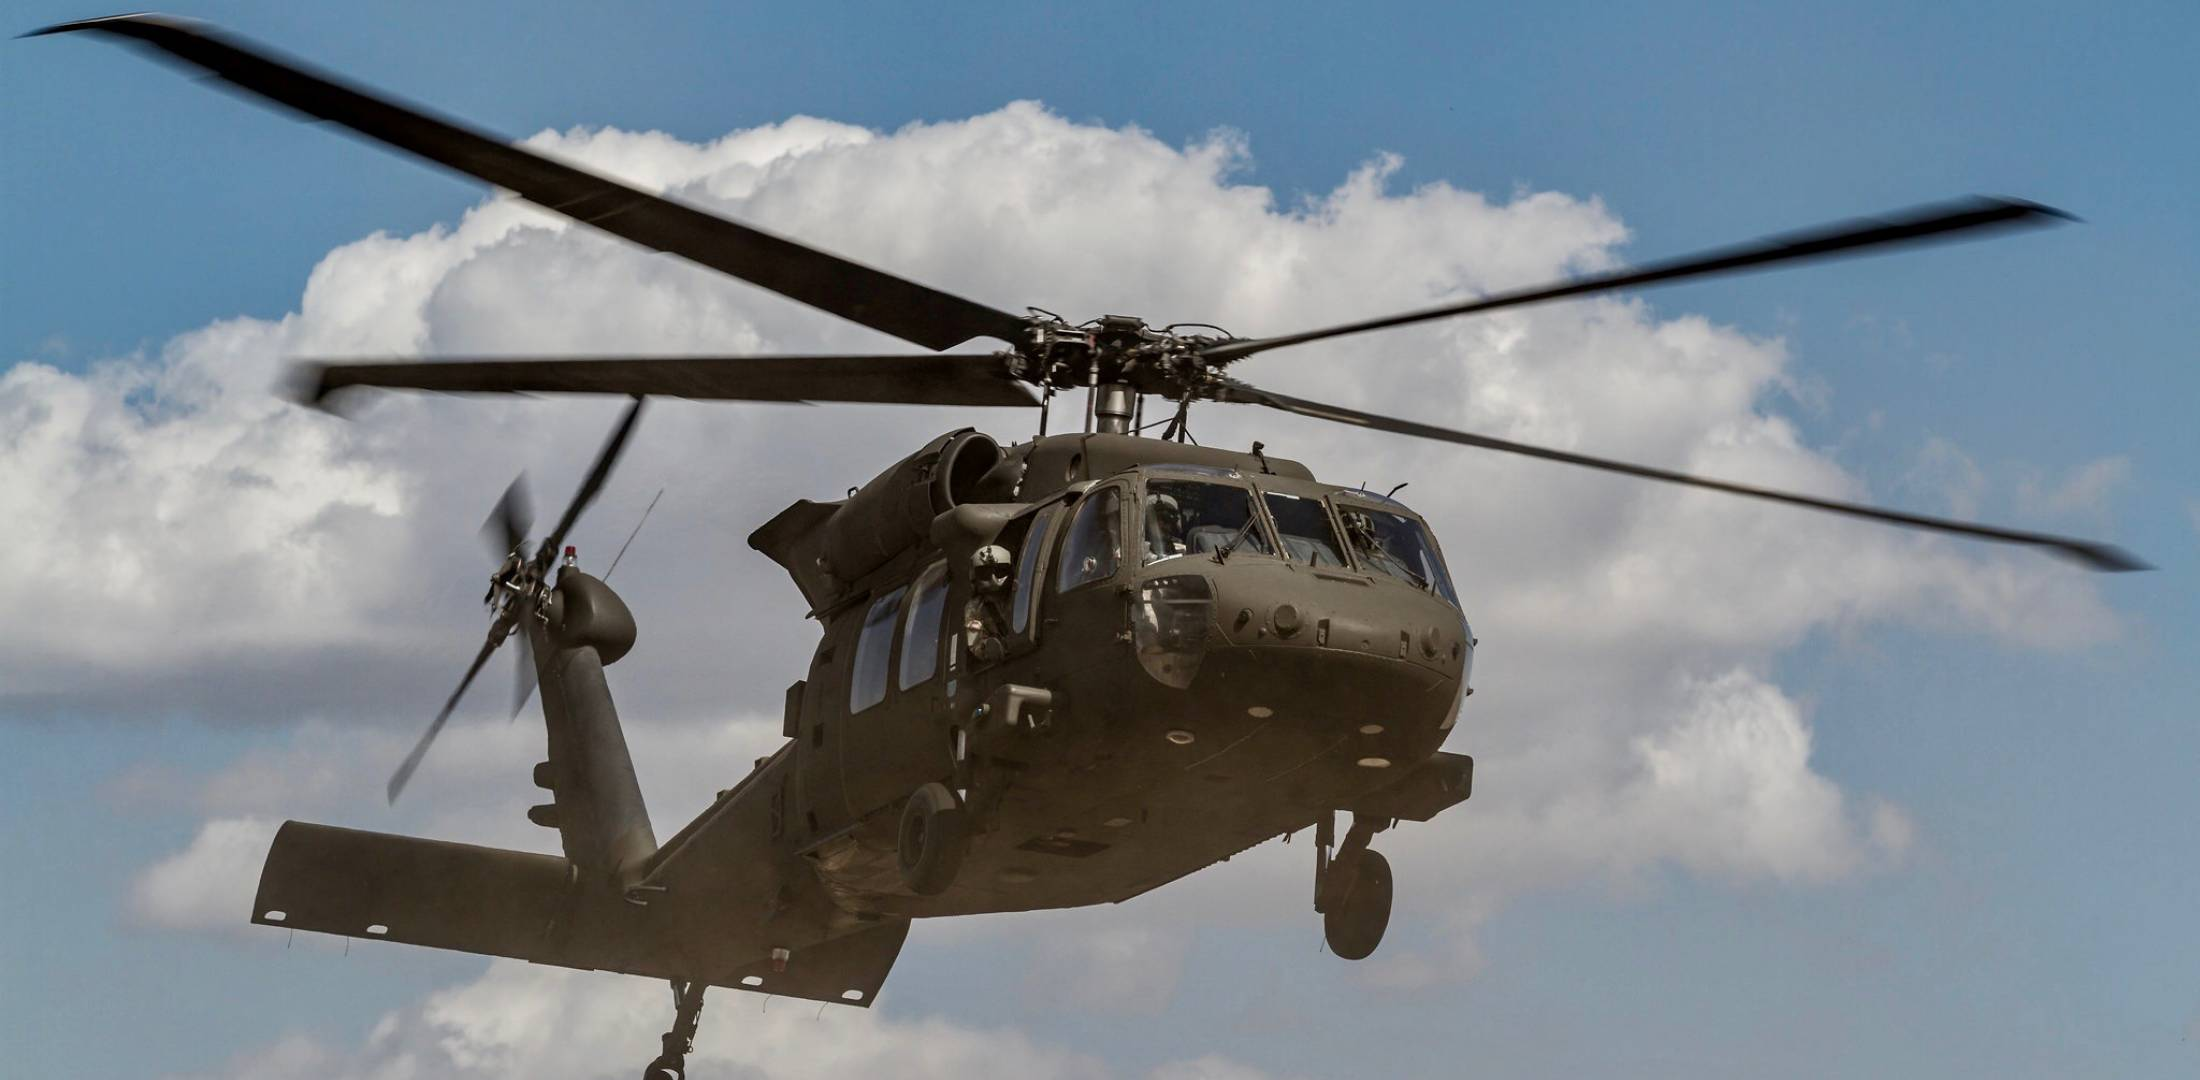 The Drone Strike Caused Minor But Visible Damage To A Rotor Blade And Window On Blackhawk Photo US Army